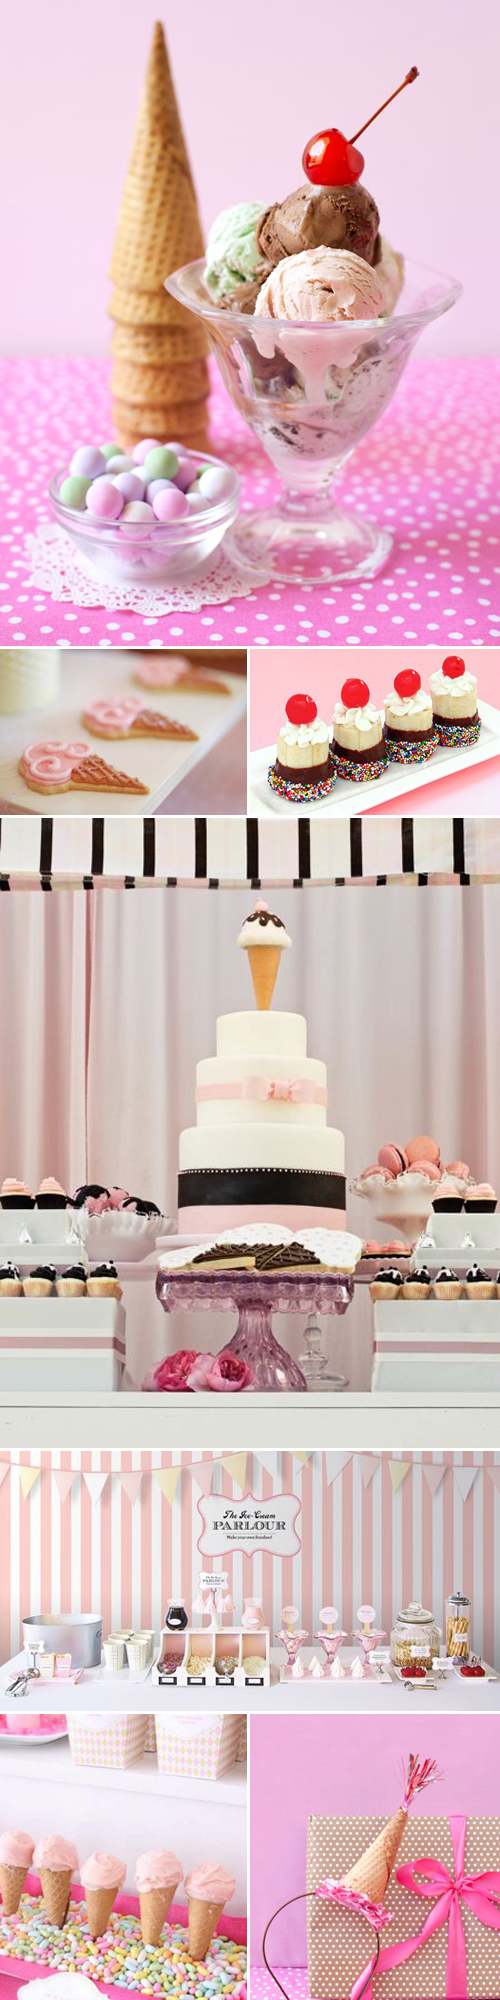 Ice Cream Social Party Inspiration Board